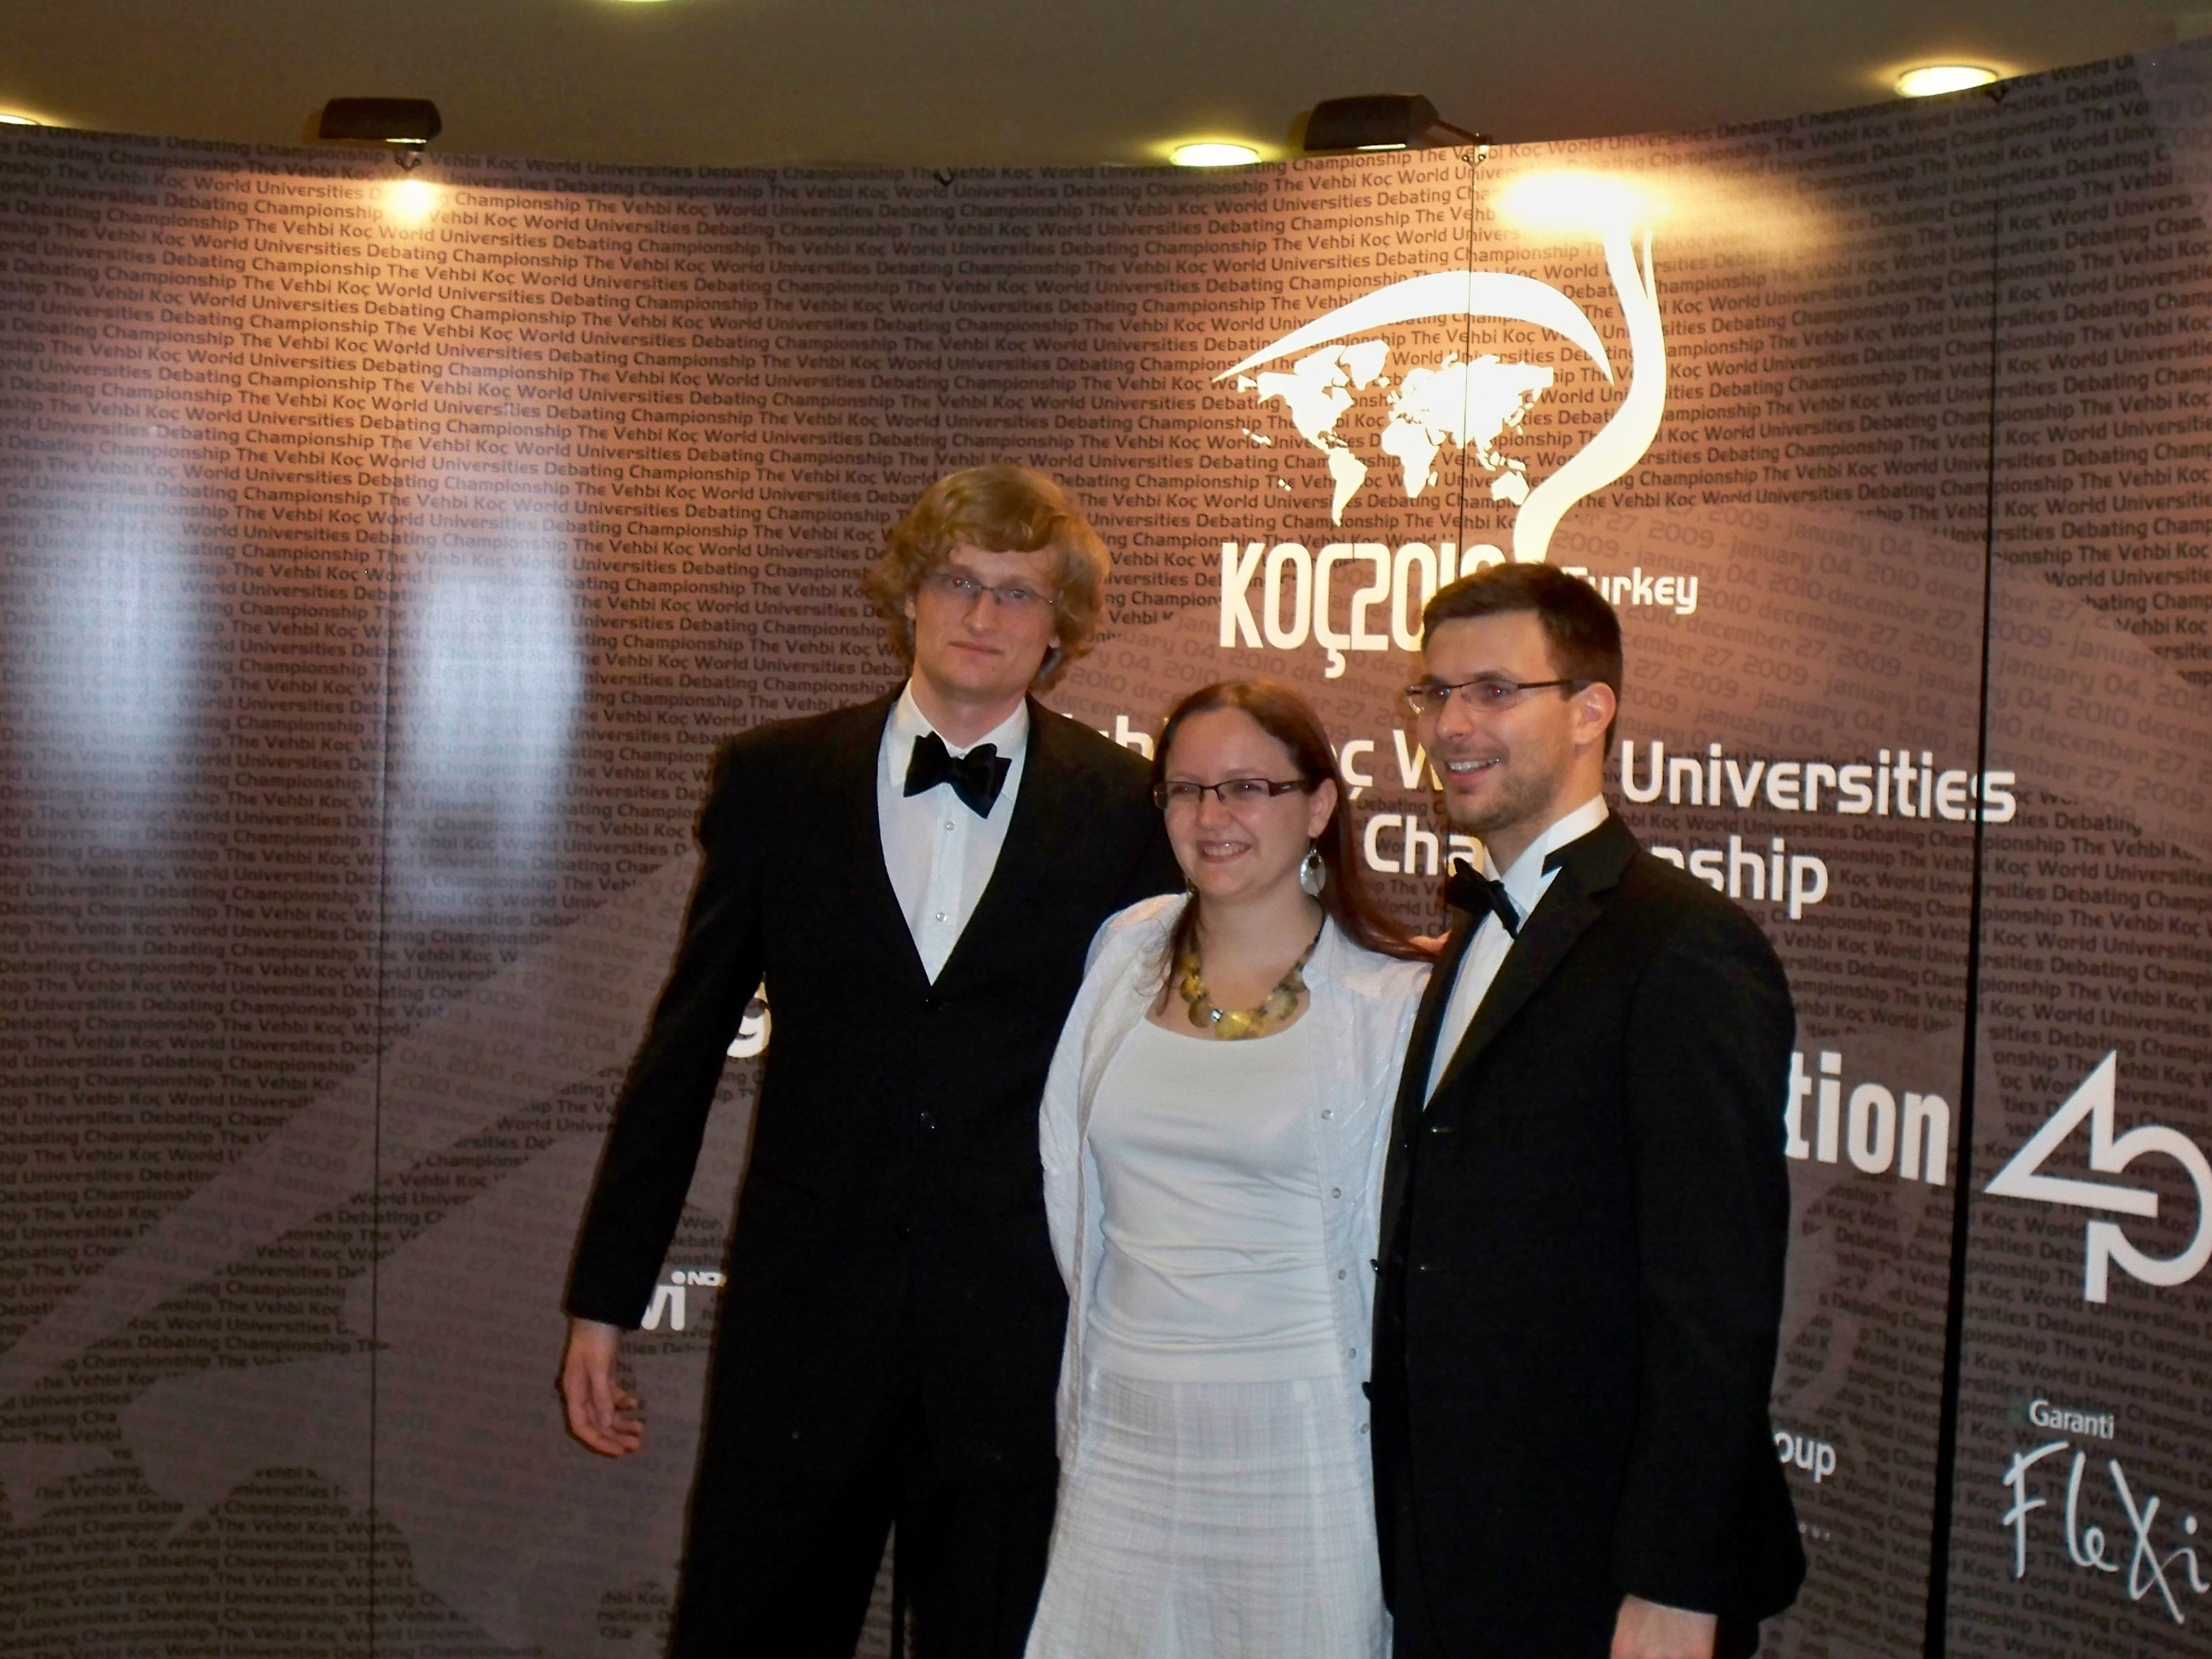 Koç Worlds 2010 - Team Austria: Leonhard Weese, Sabine Reinalter, Lukas Grill (left to right)